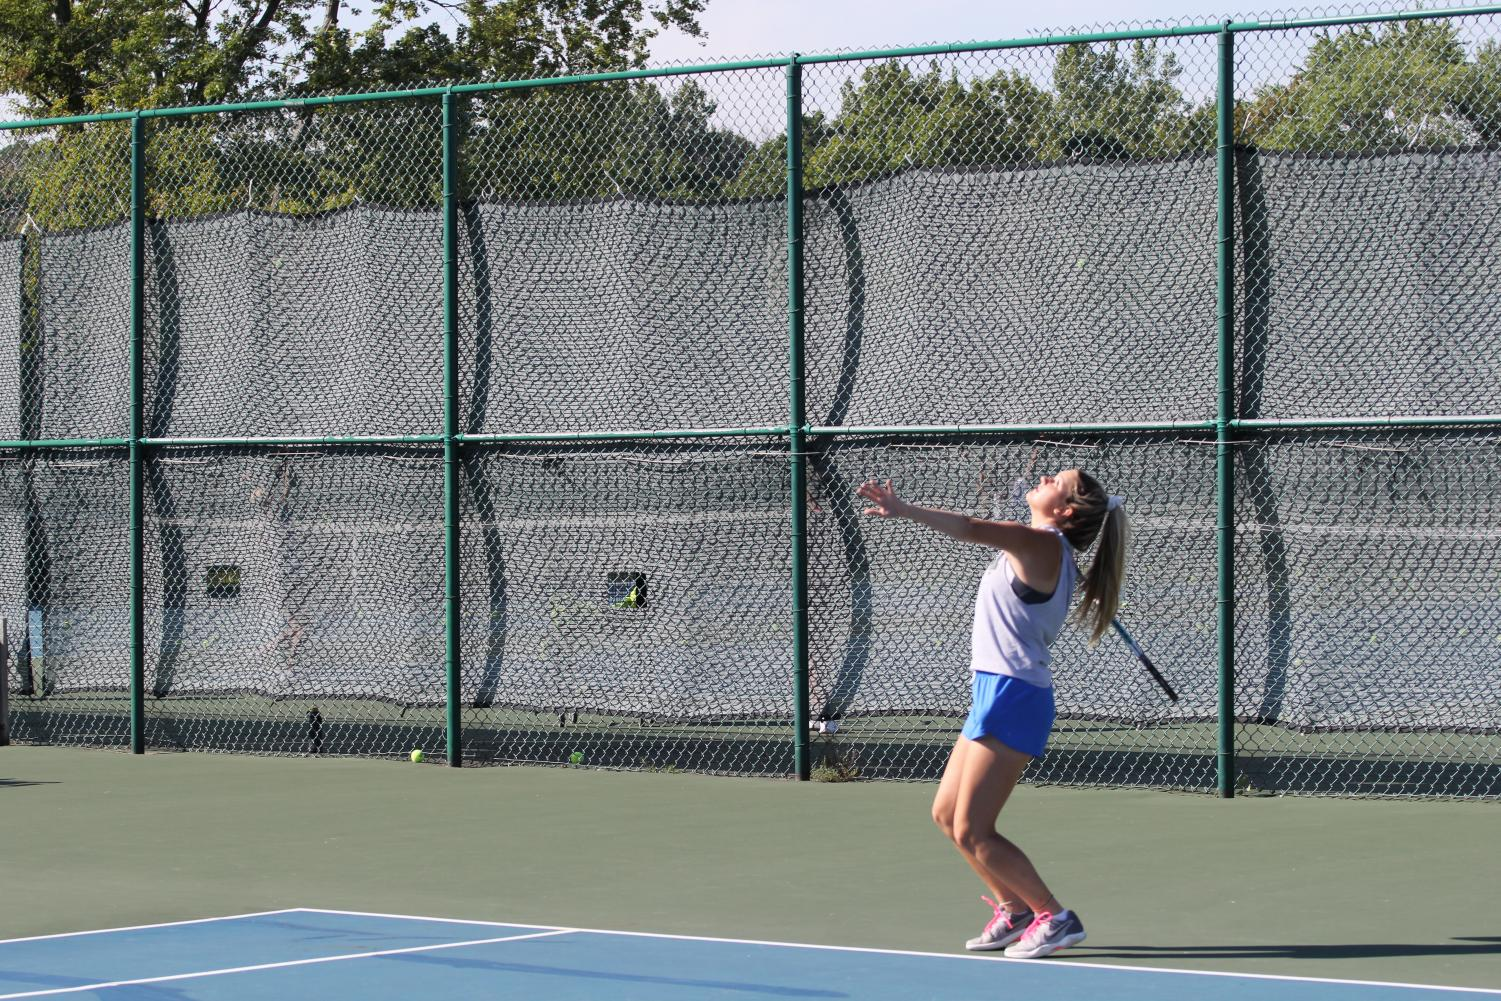 Erica Hearvin serving the tennis ball. Photo by Jakob Killian